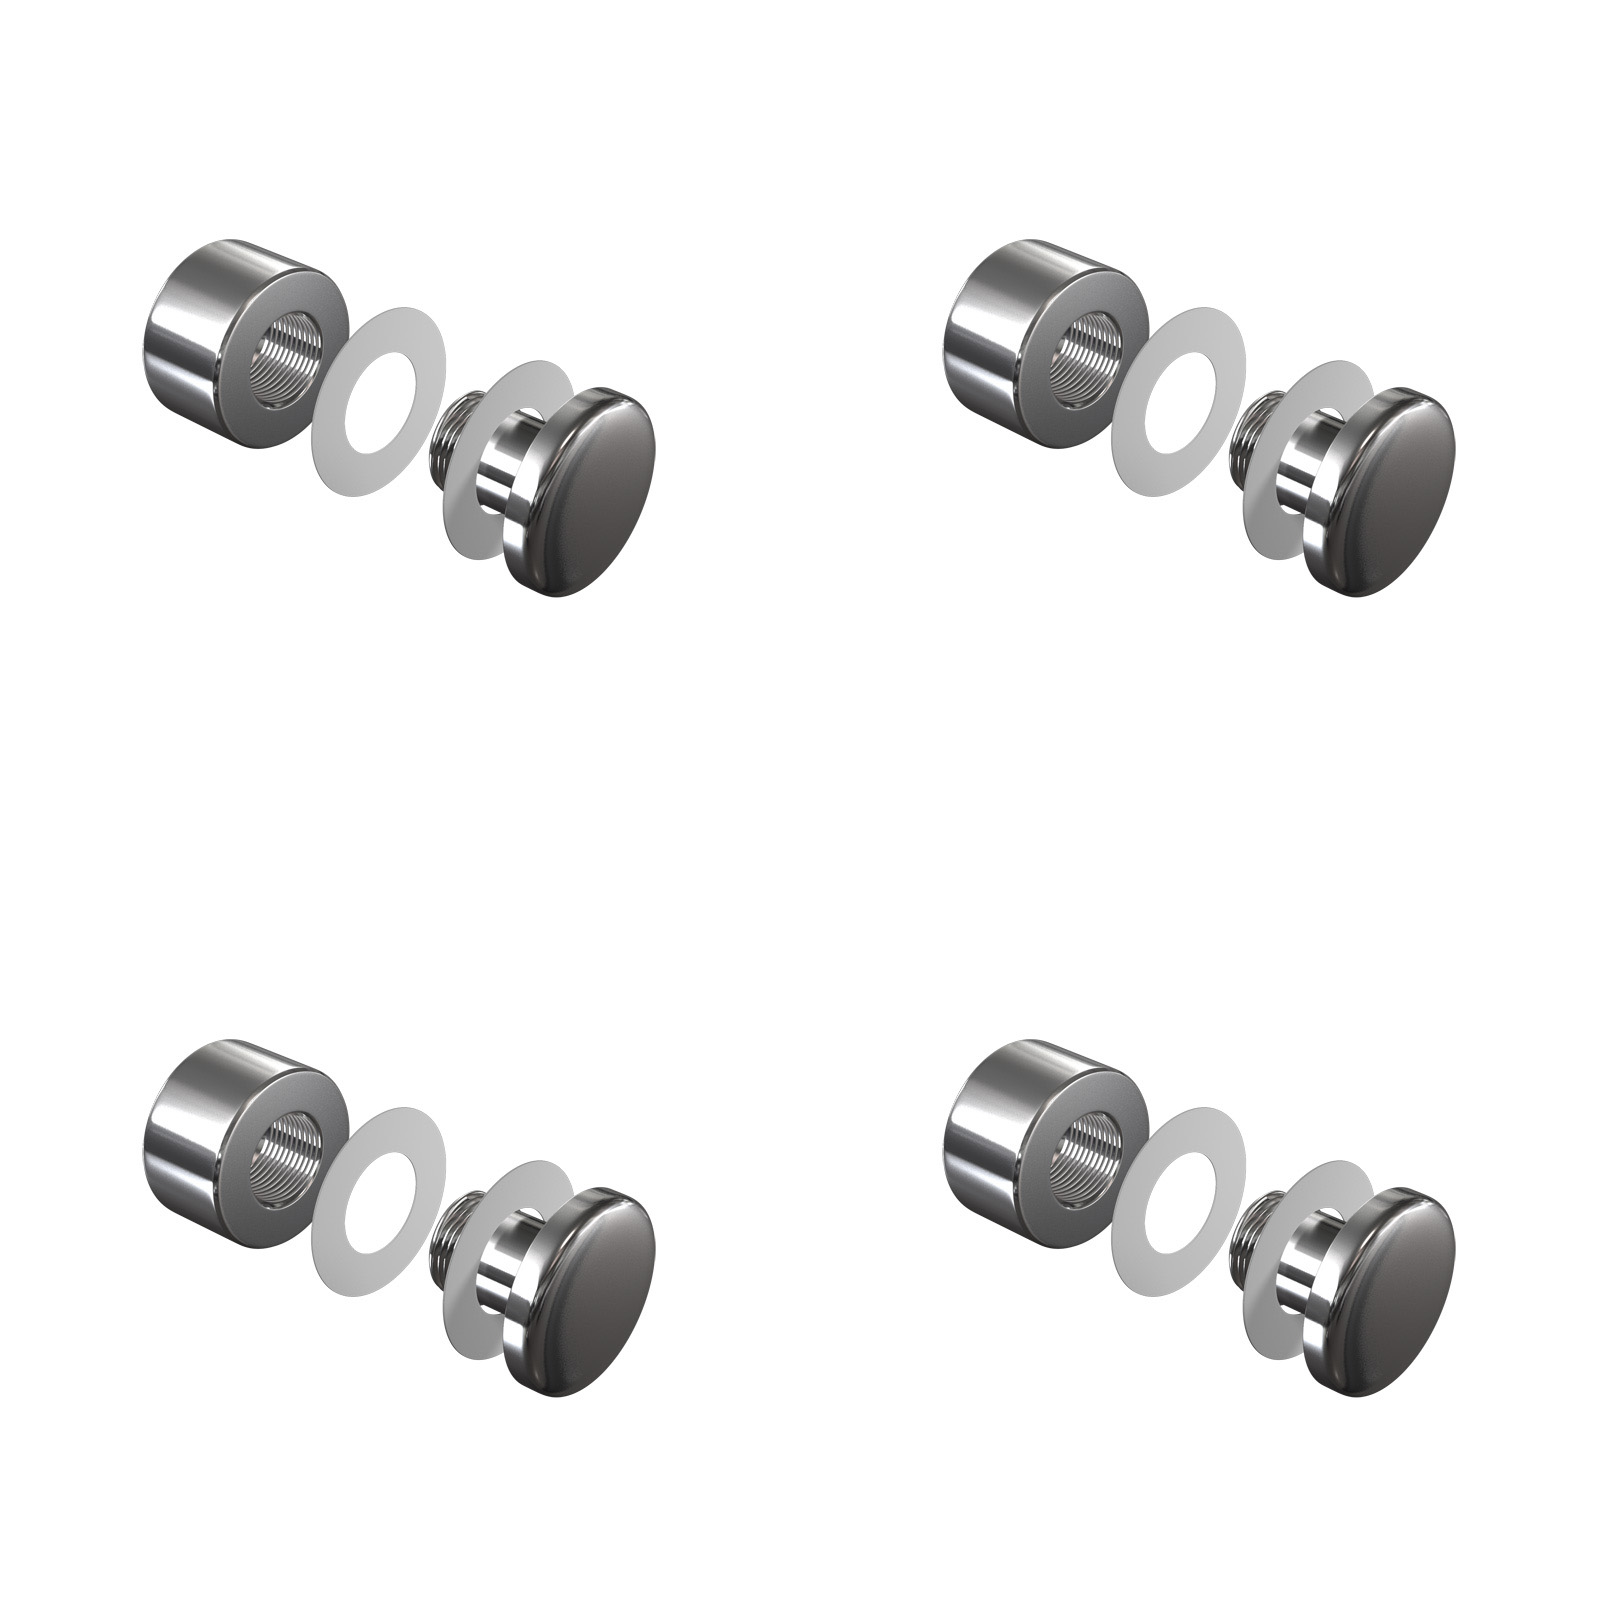 Screw wall mounting FIXV4